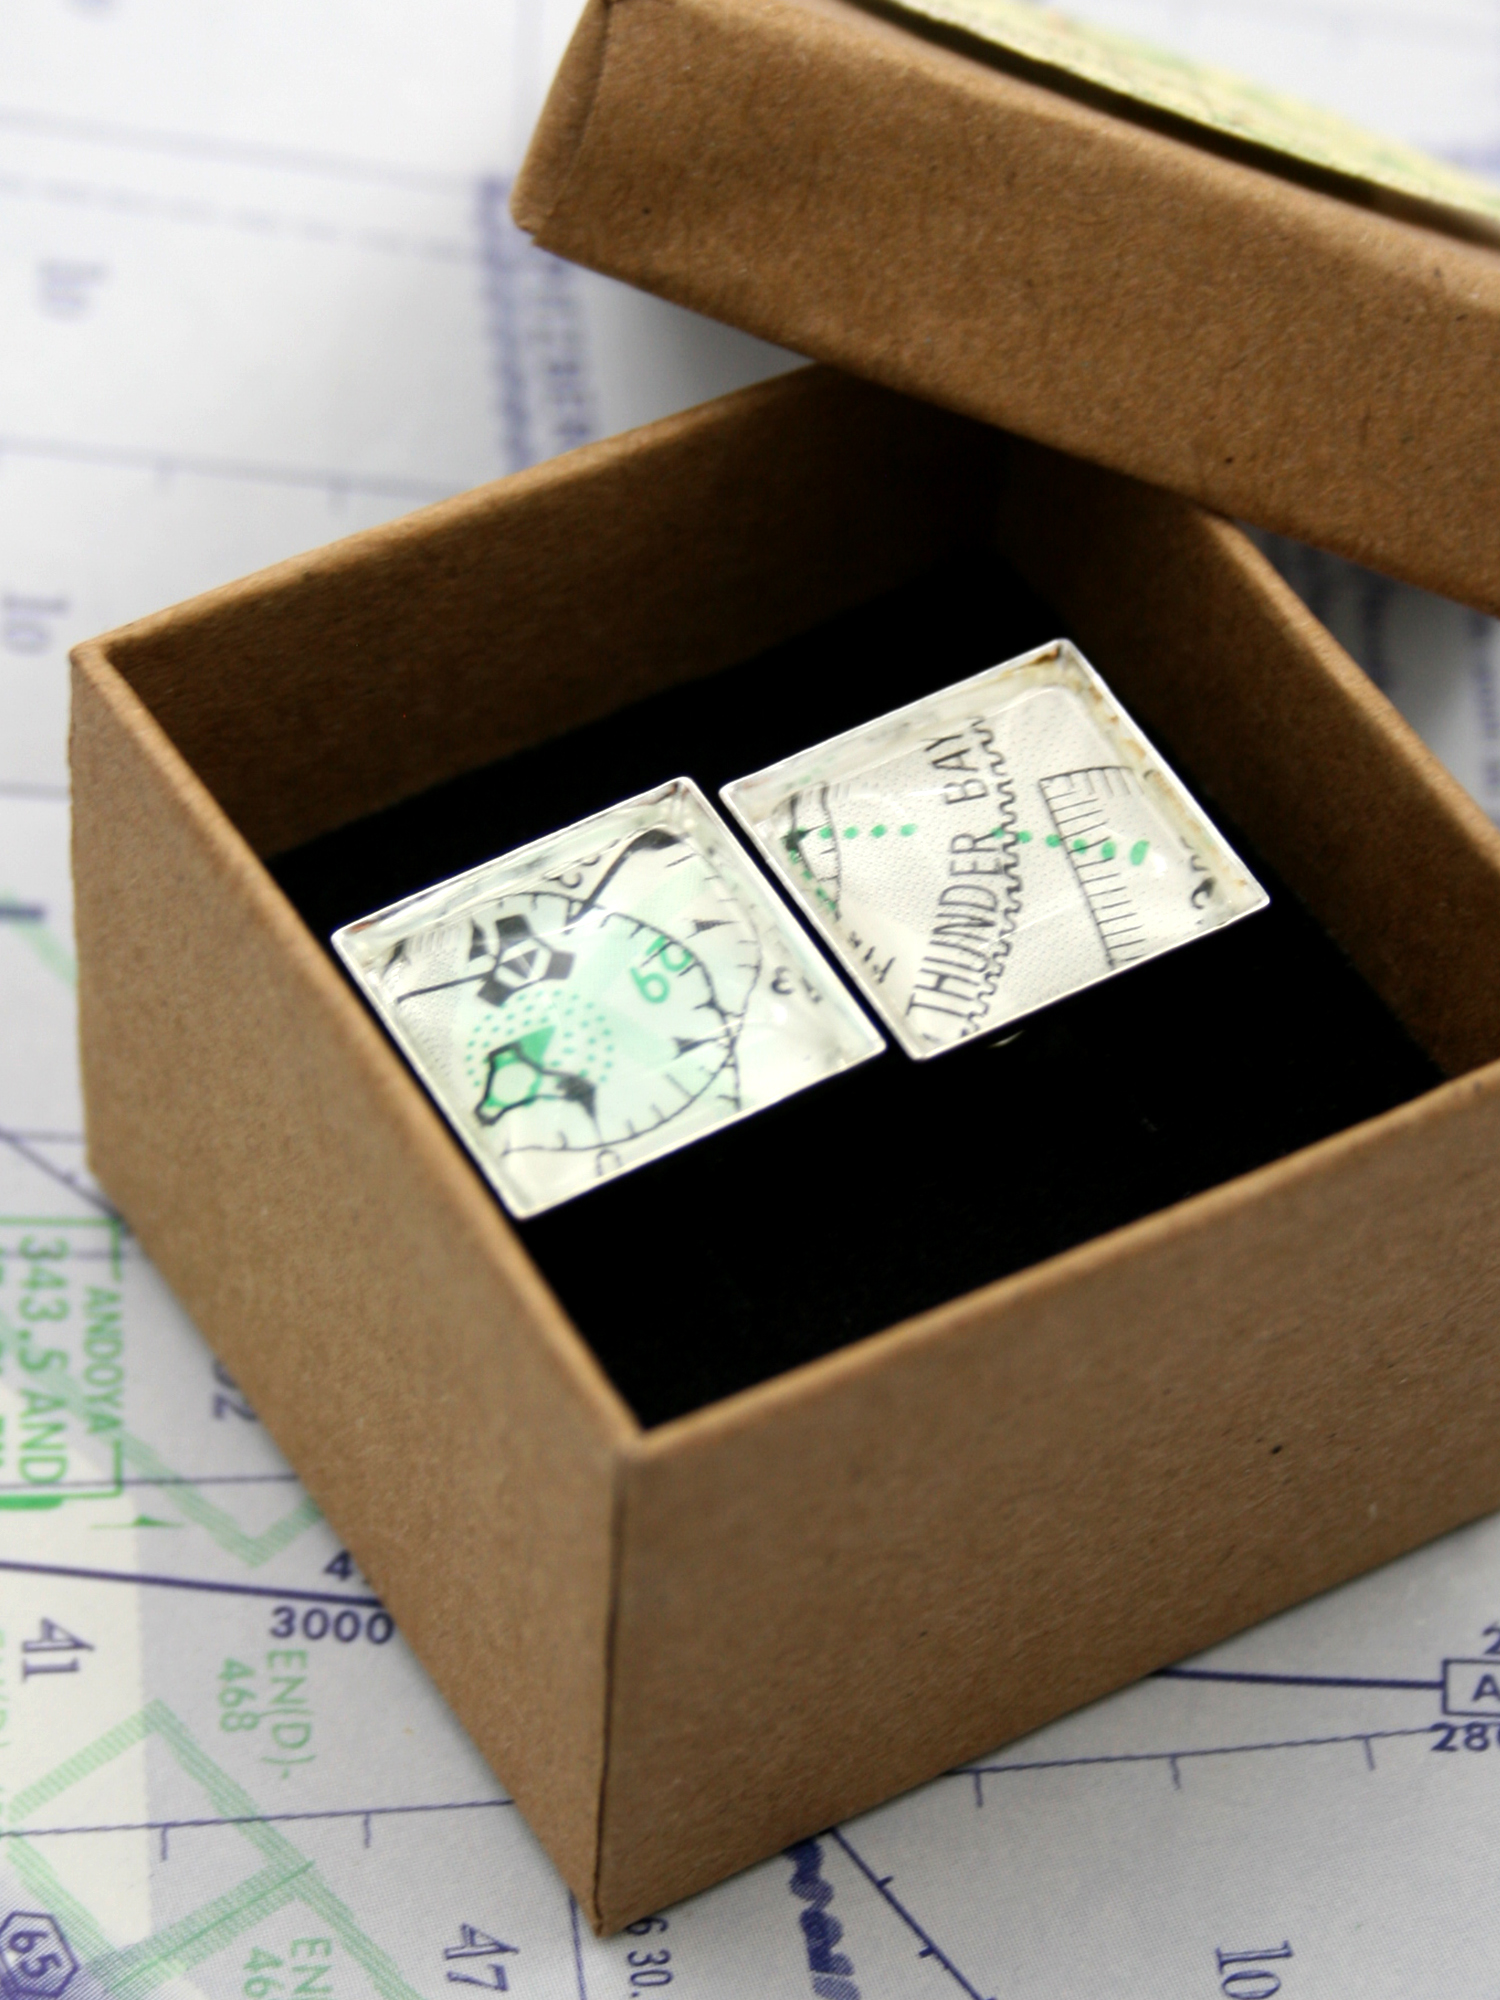 Personalized cuff-links with real aeronautical charts